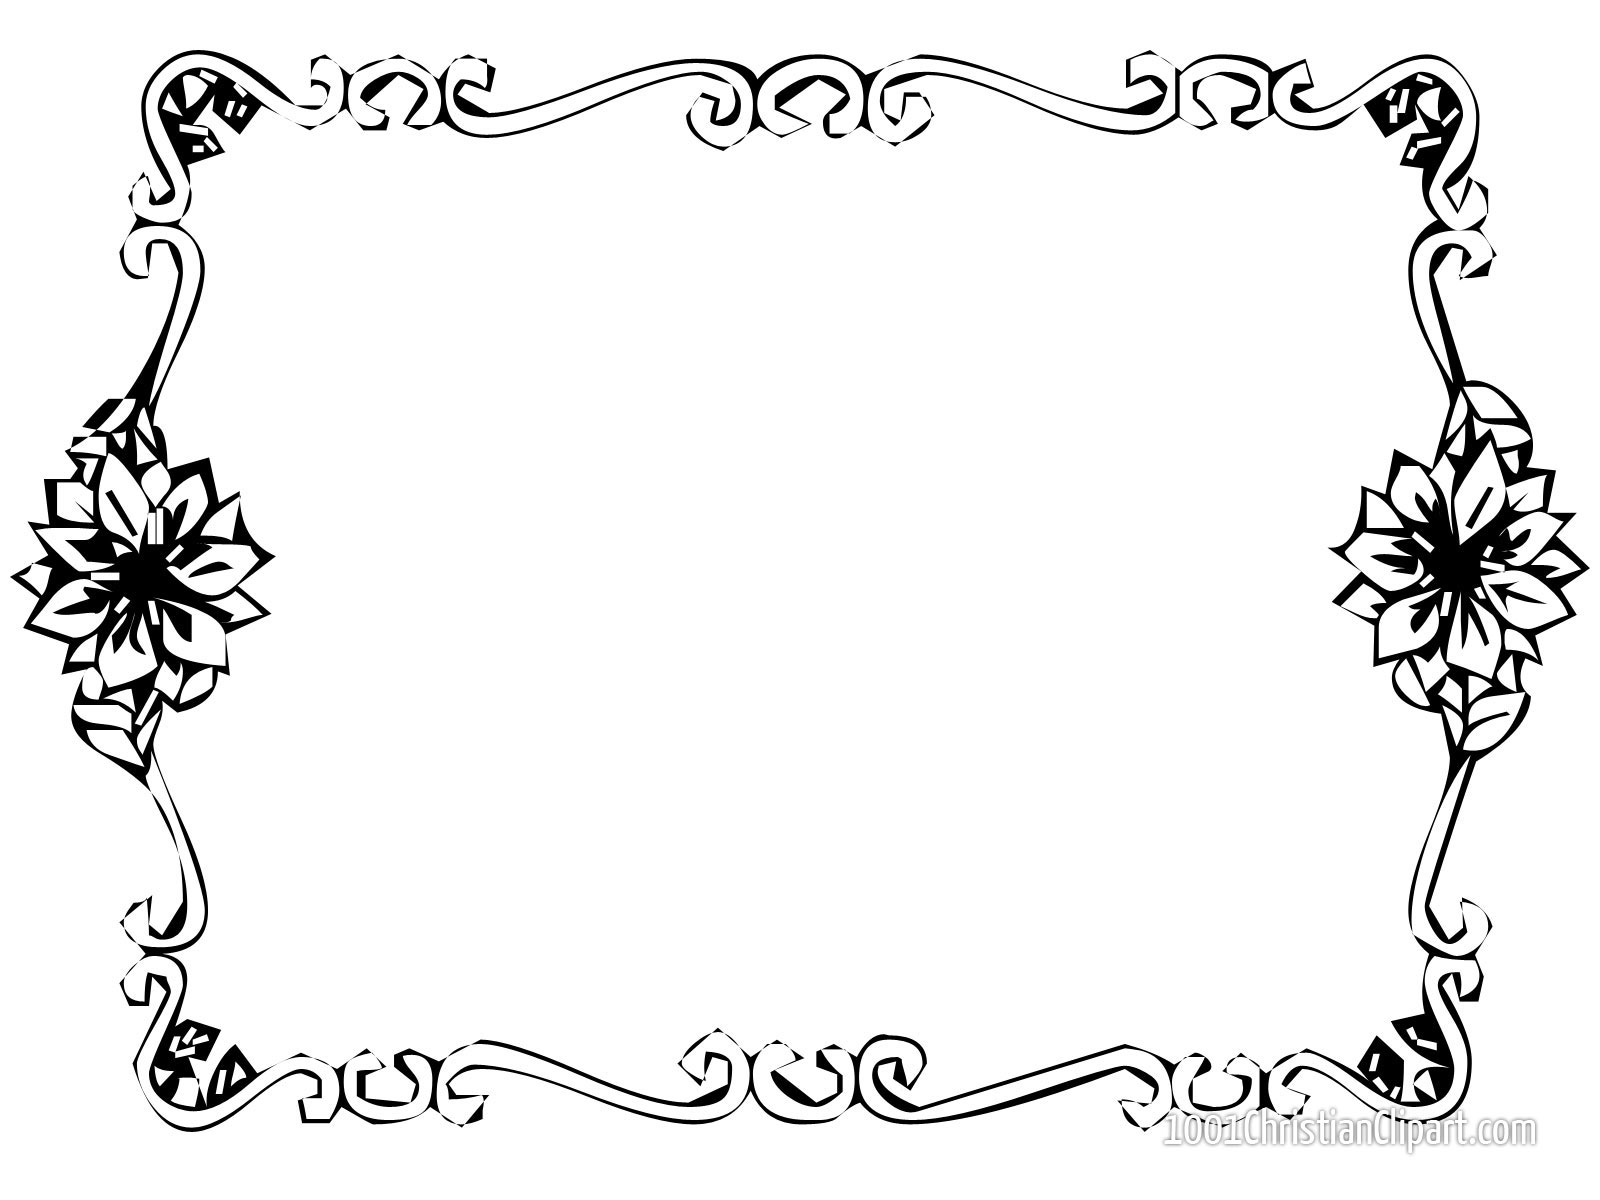 Free Download Border Download Free Clip Art Free Clip Art On Clipart Library